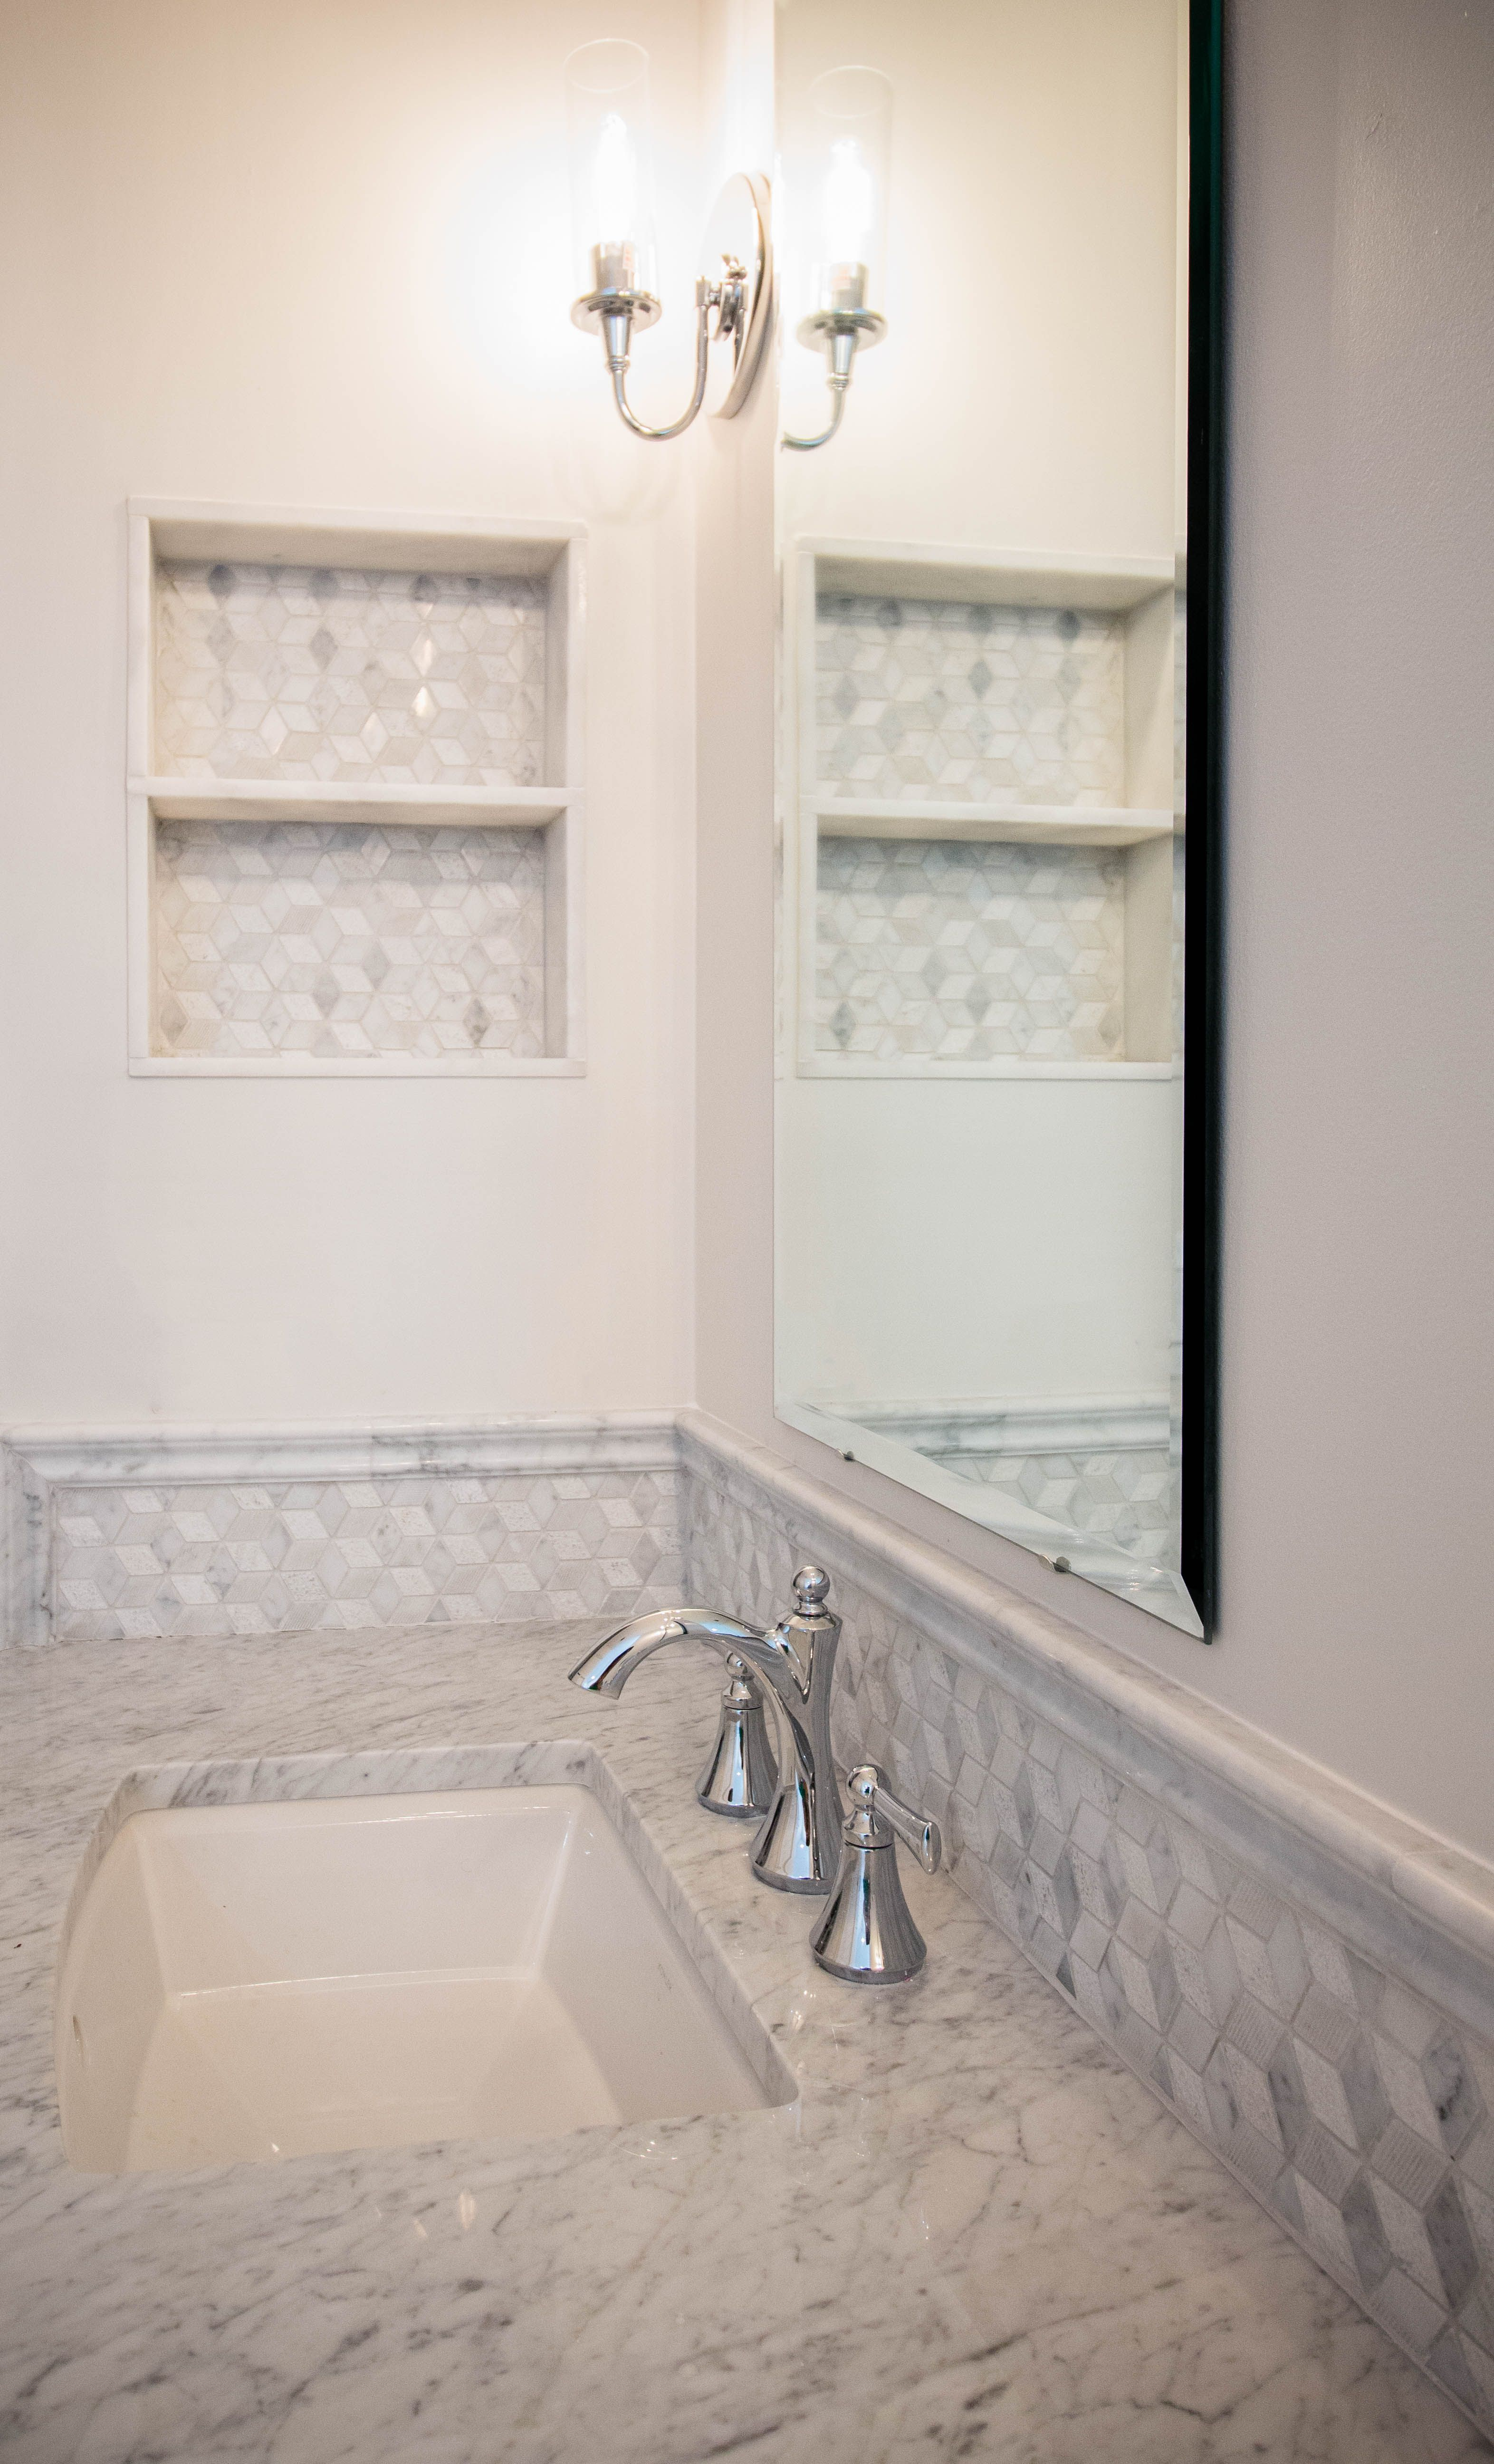 The kitchen and bathroom remodeling professionals at